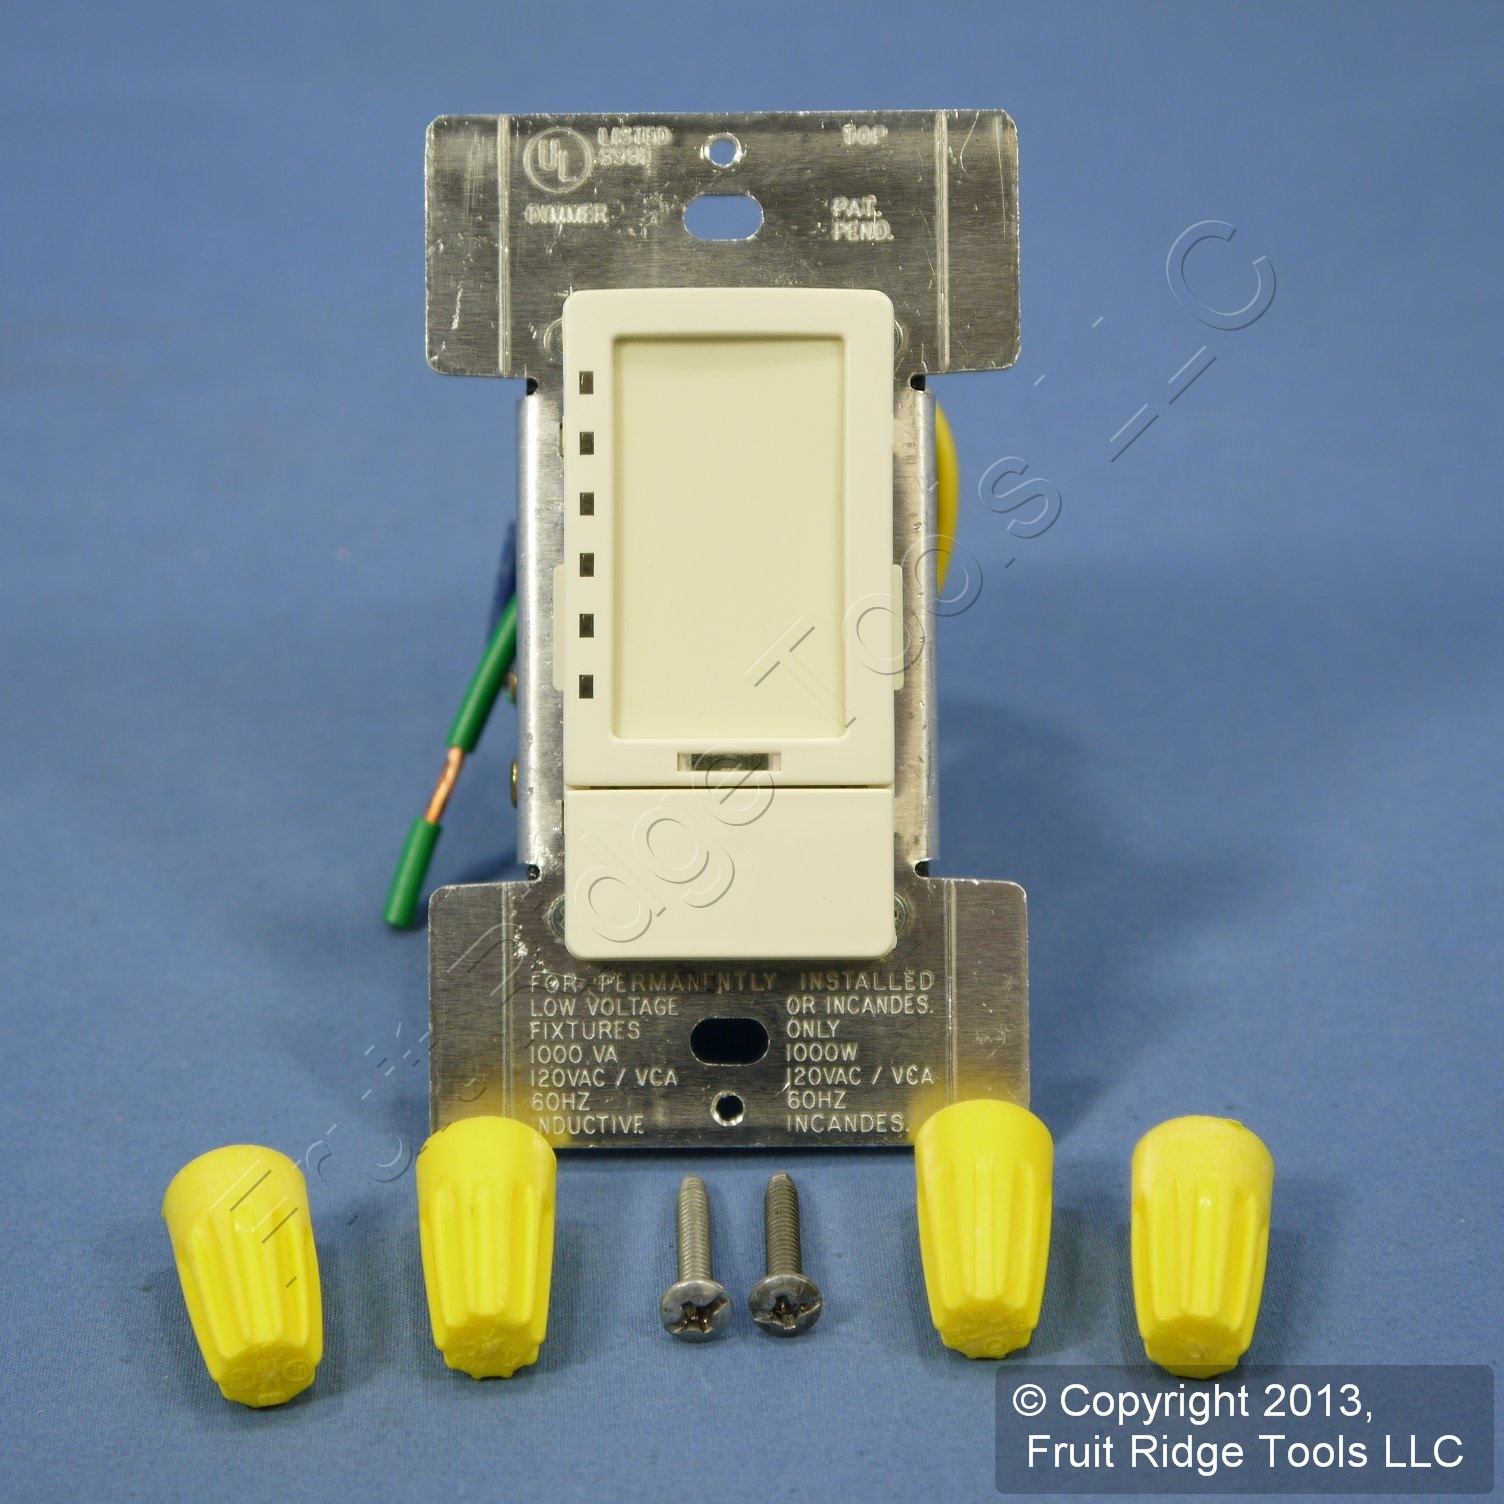 Leviton Almond Multiremote For Mural Touch Point Dimmer Switch Ms00r